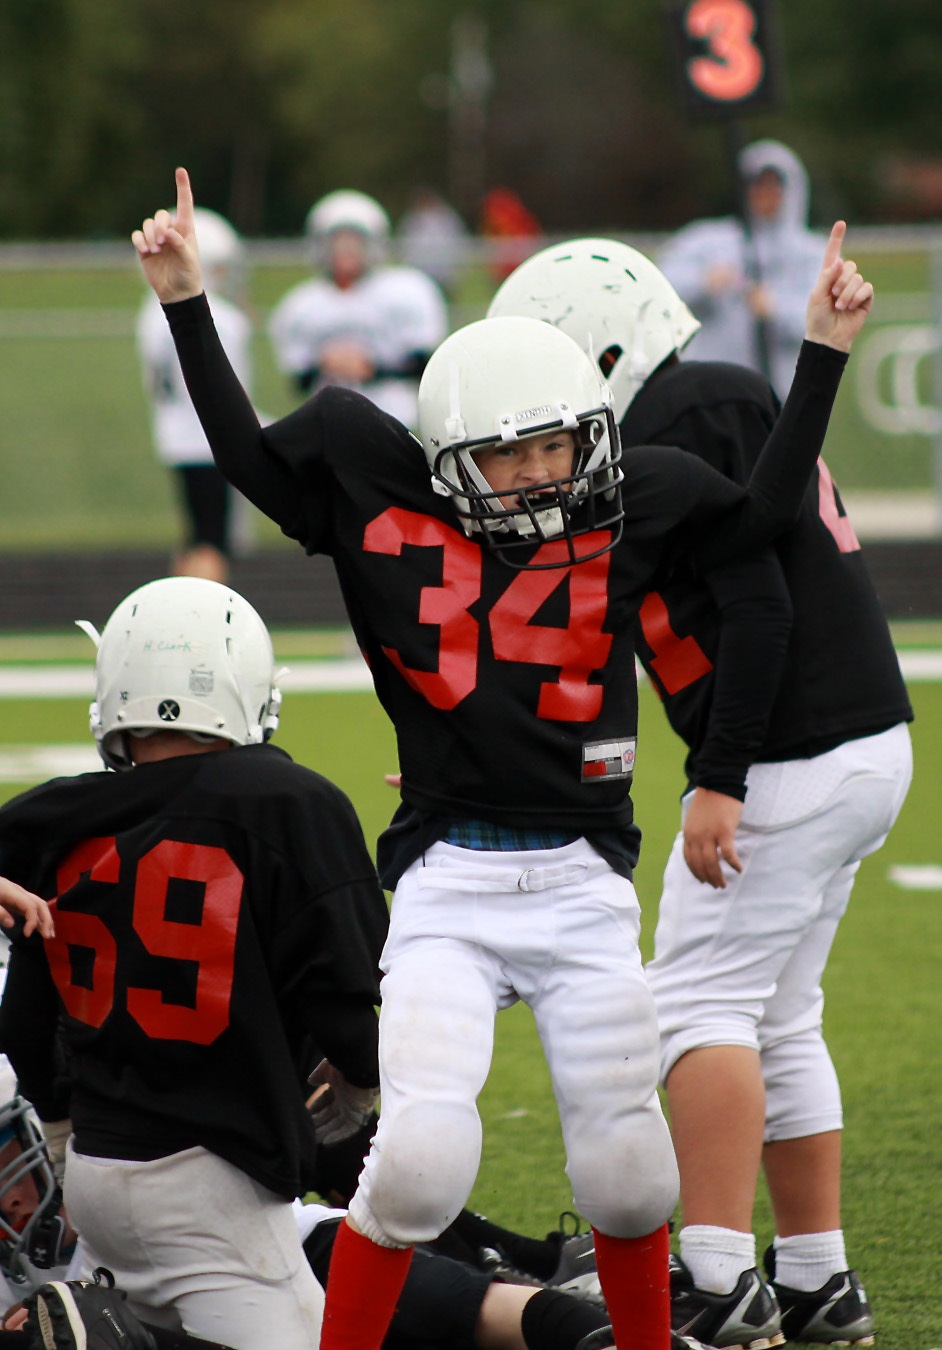 Triumph and heartbreak are consistent themes in any sport. But, the feelings concentrated when kids are playing. In this photo, a young football player reacts to his own good effort, and he looks to his parents in the stands for validation.